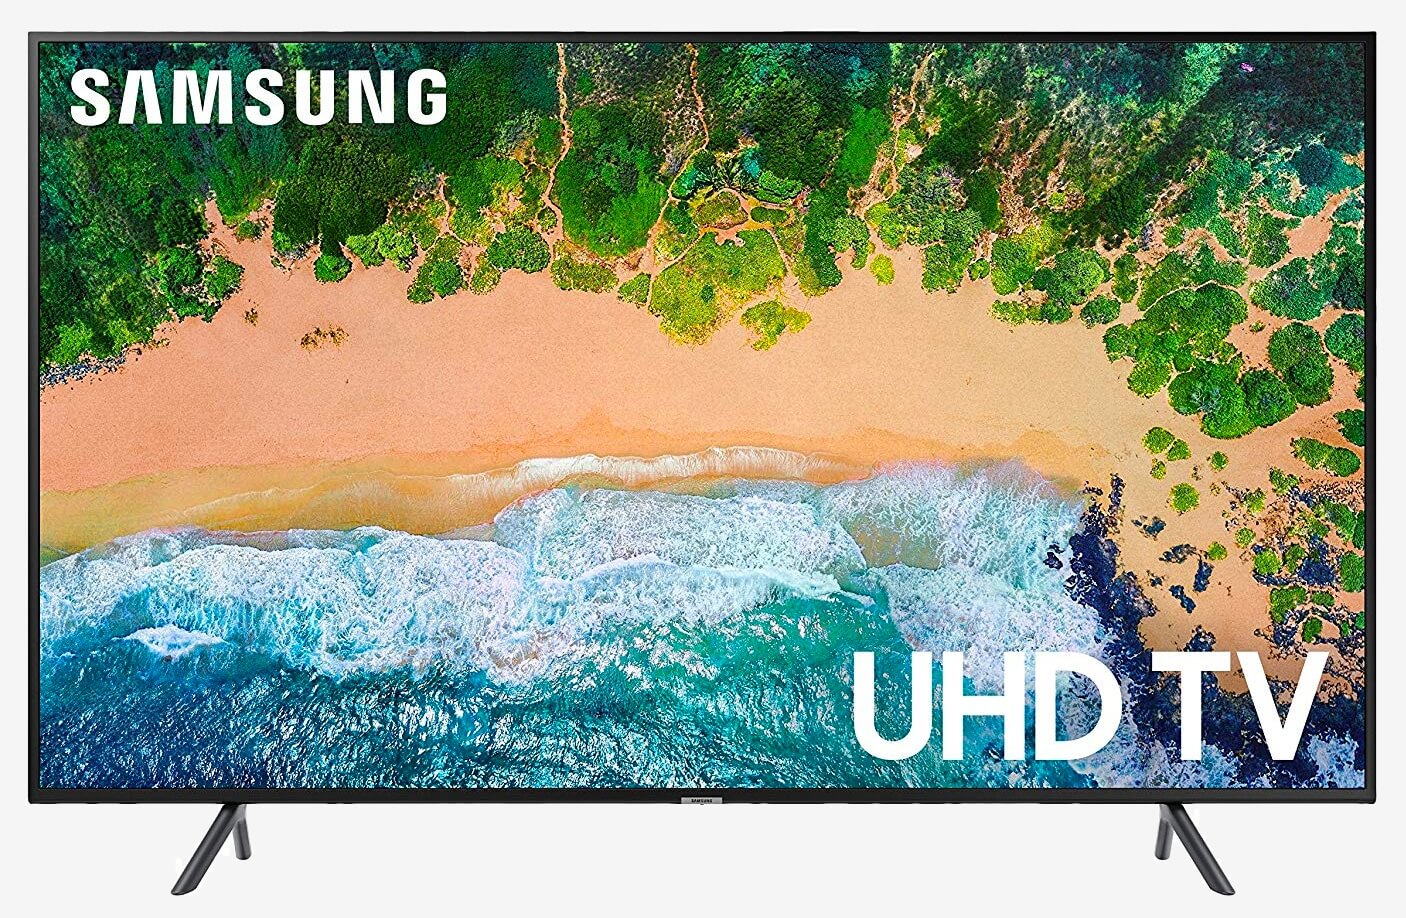 Recommended 4K TVs That Can Effectively Be Used As Desktop PC